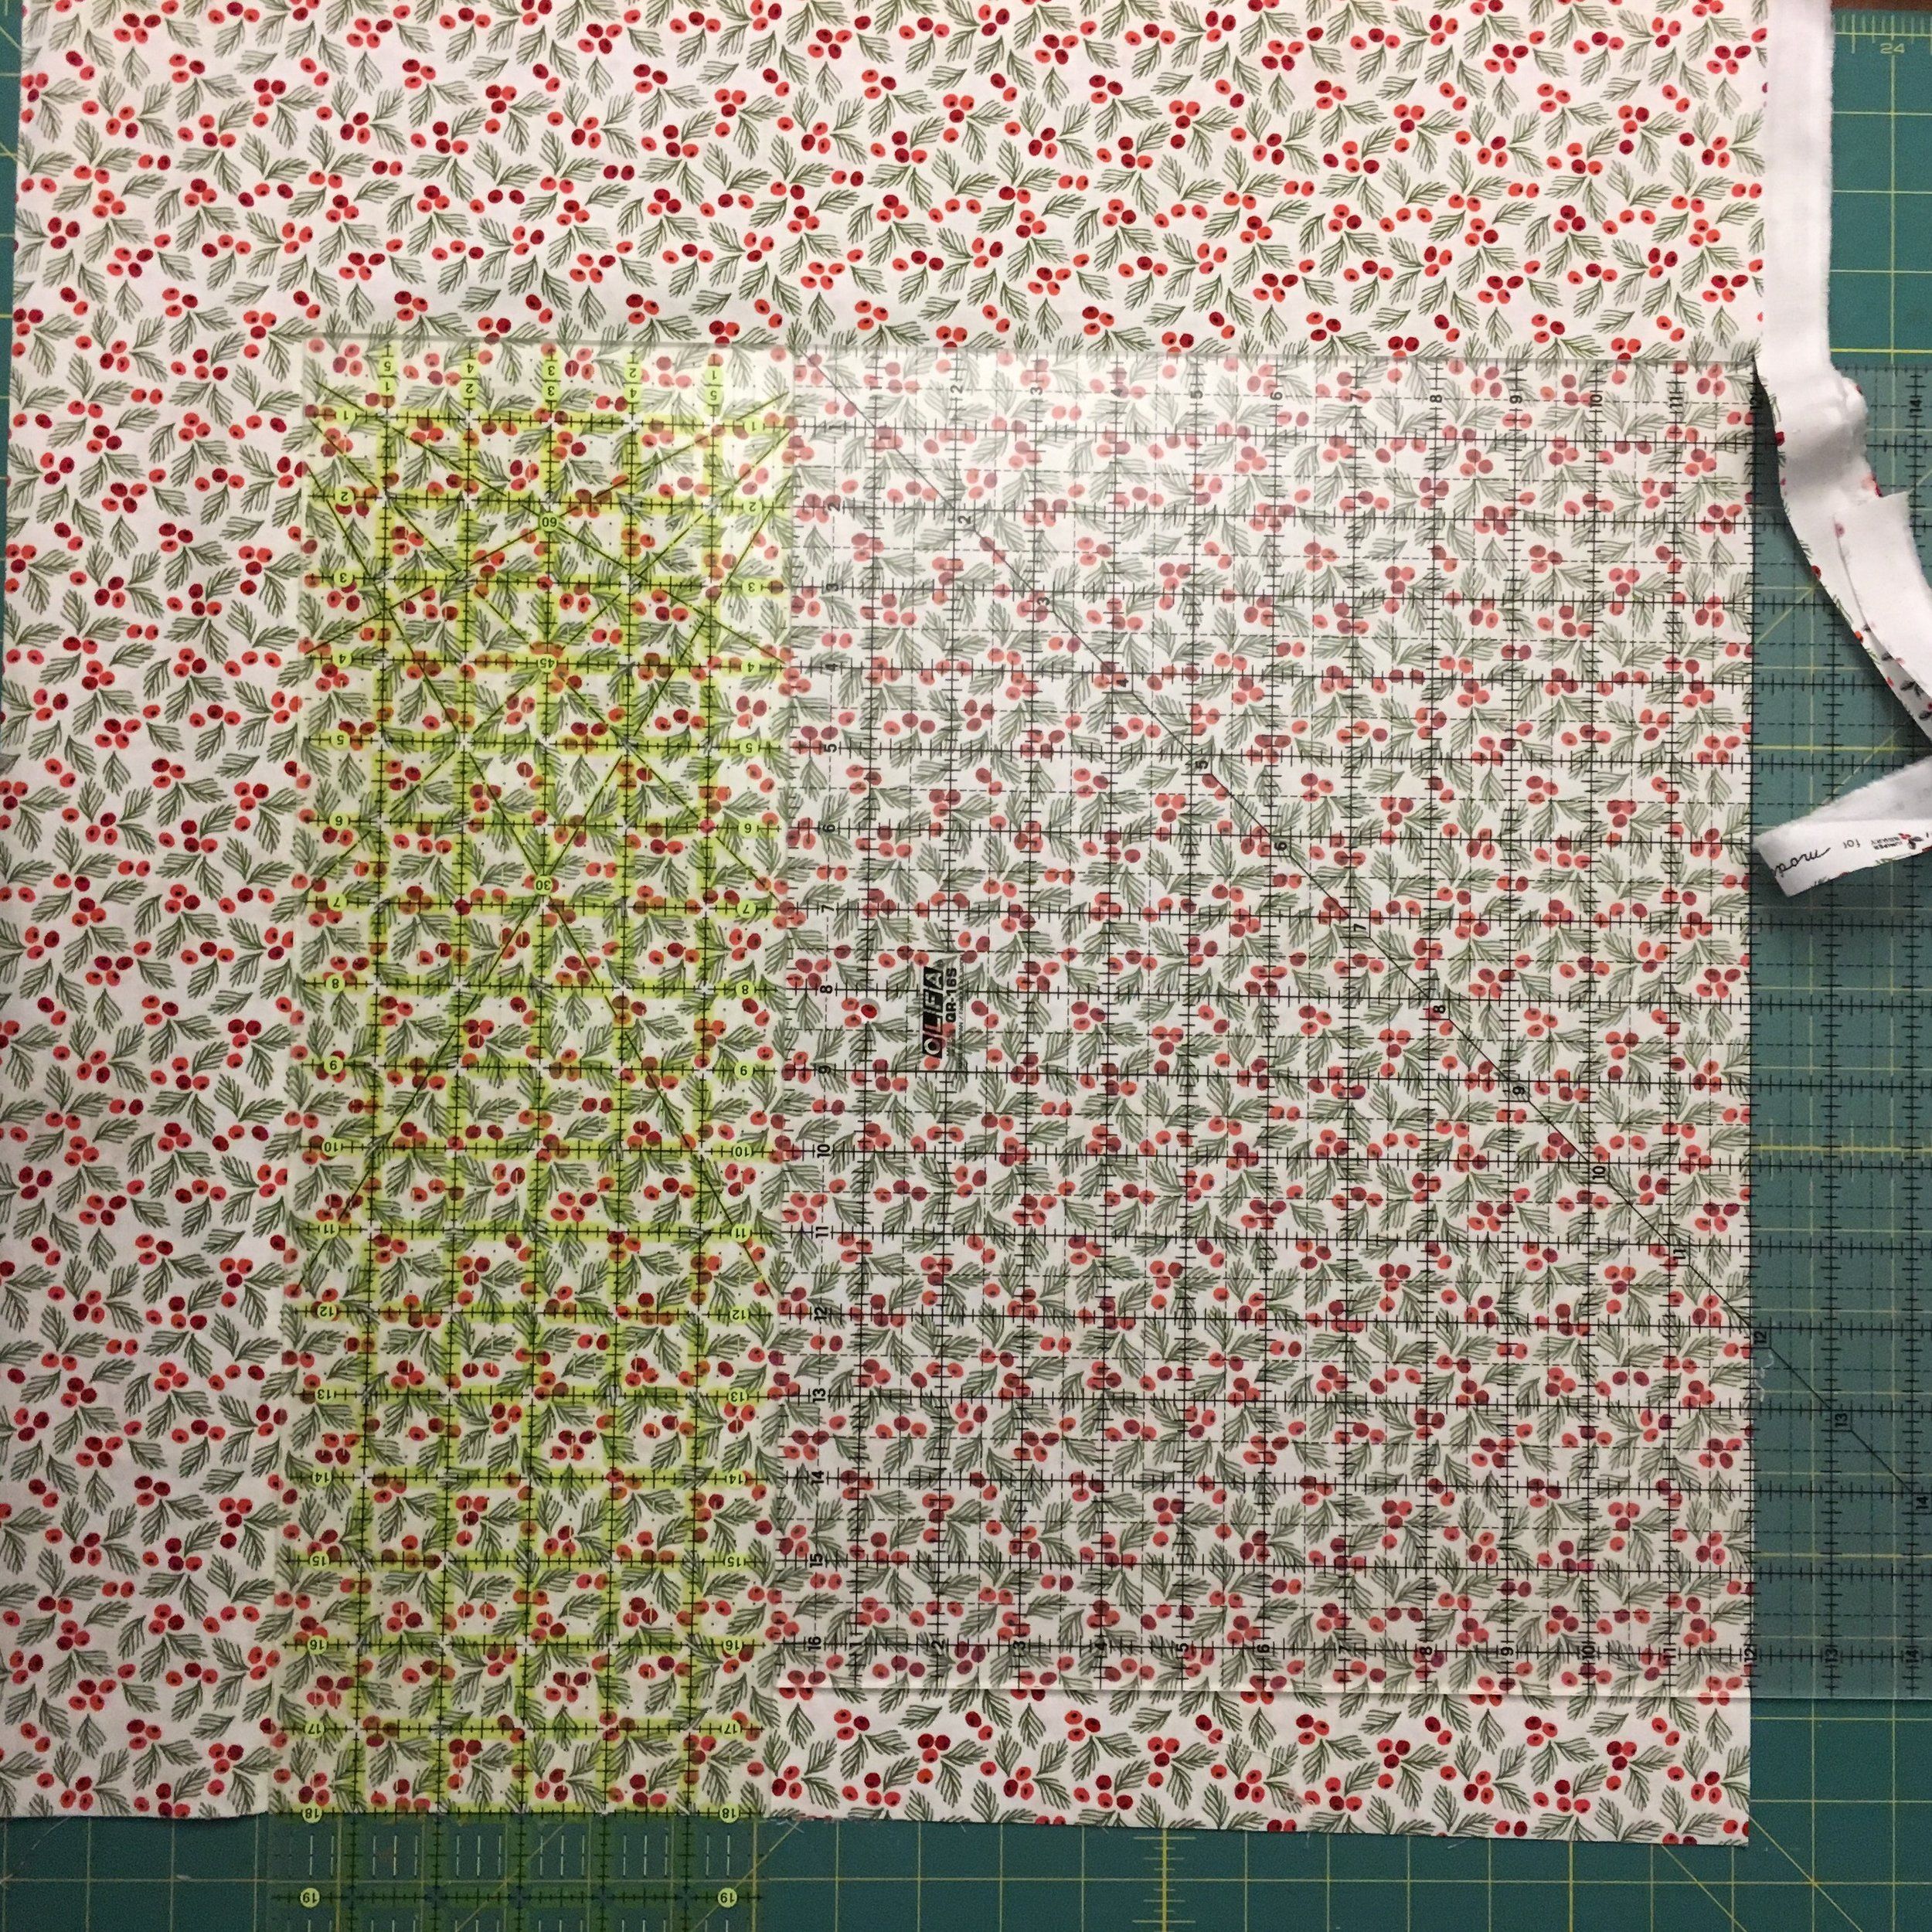 24 inch ruler is on the left, with the quilting square on the right. The fabric cut will be 18 inches long and 18 inches wide. Note the fabric at the lower right edge that isn't covered by the shorter square ruler. That's fine because no cut is needed there.